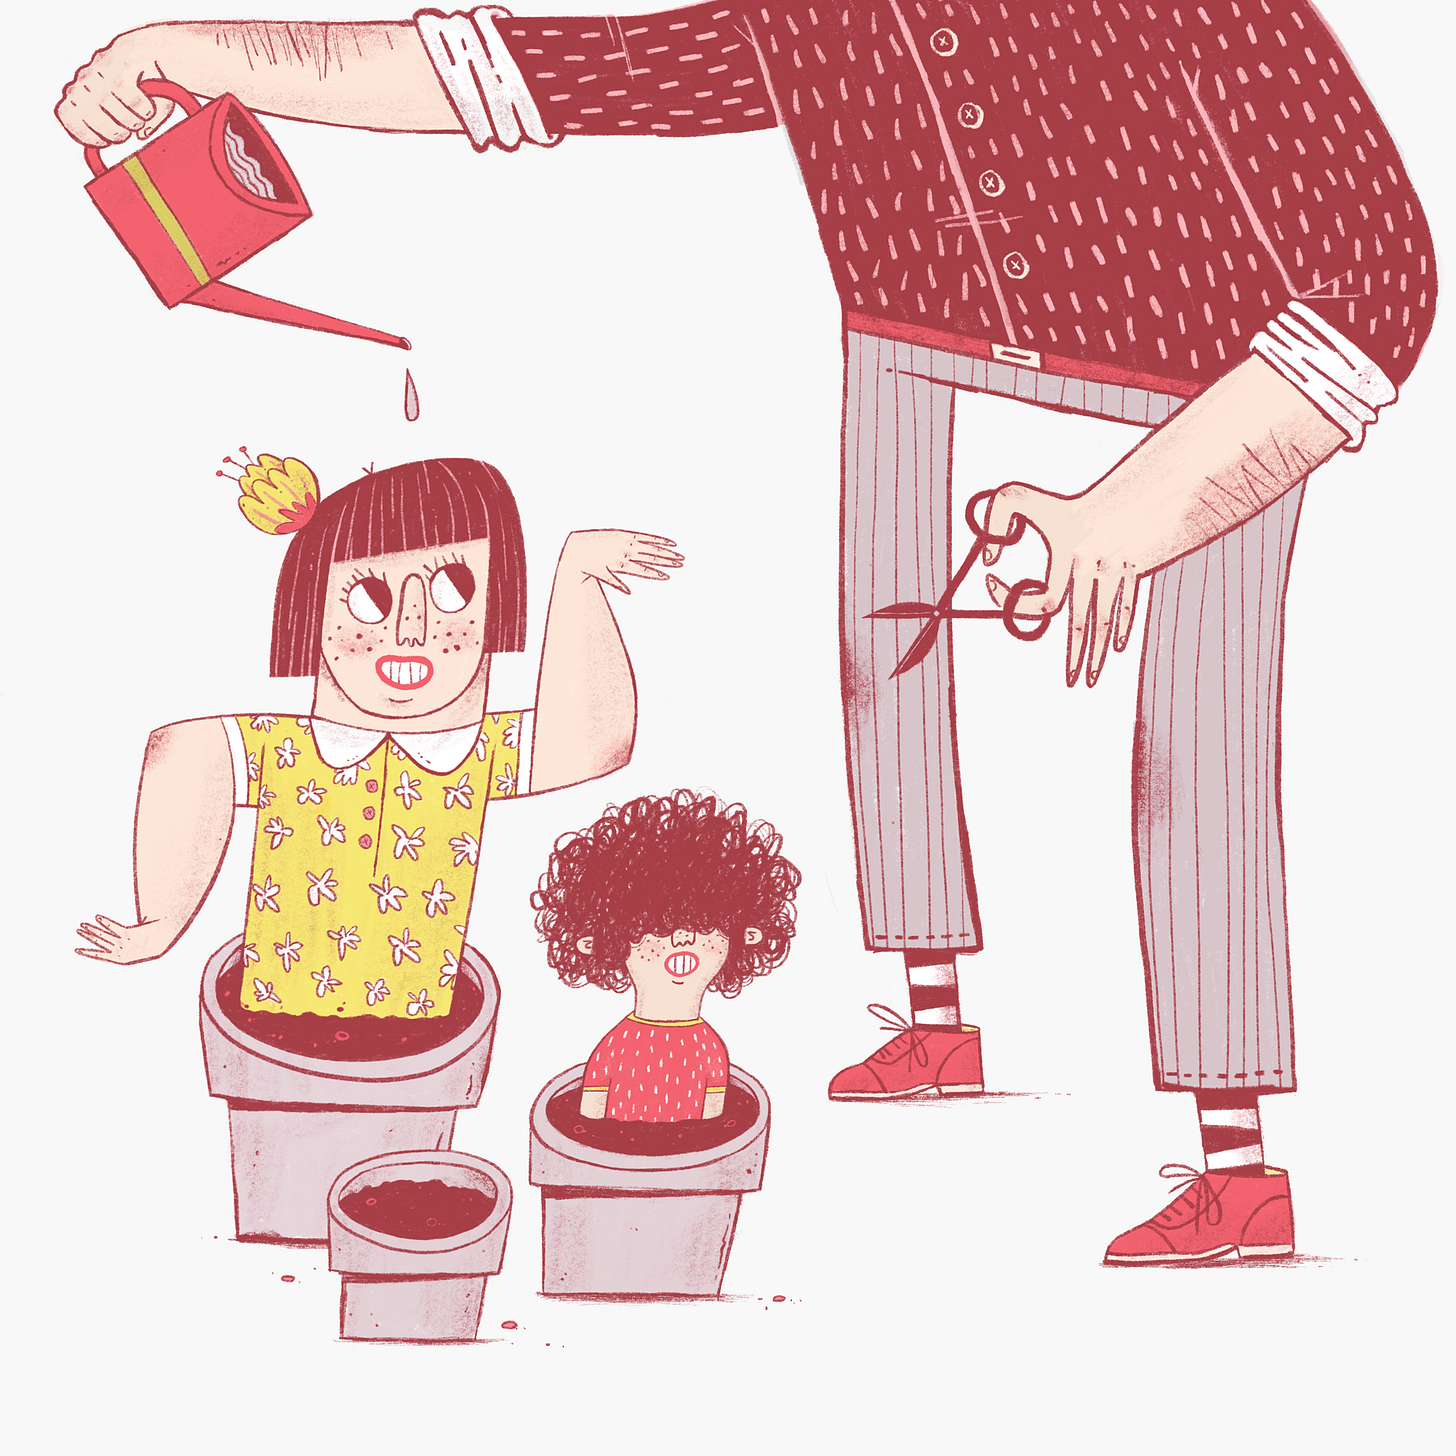 A father waters two plant pots, as his two children sit inside them, the girl smiles and holds her arms like a cactus.